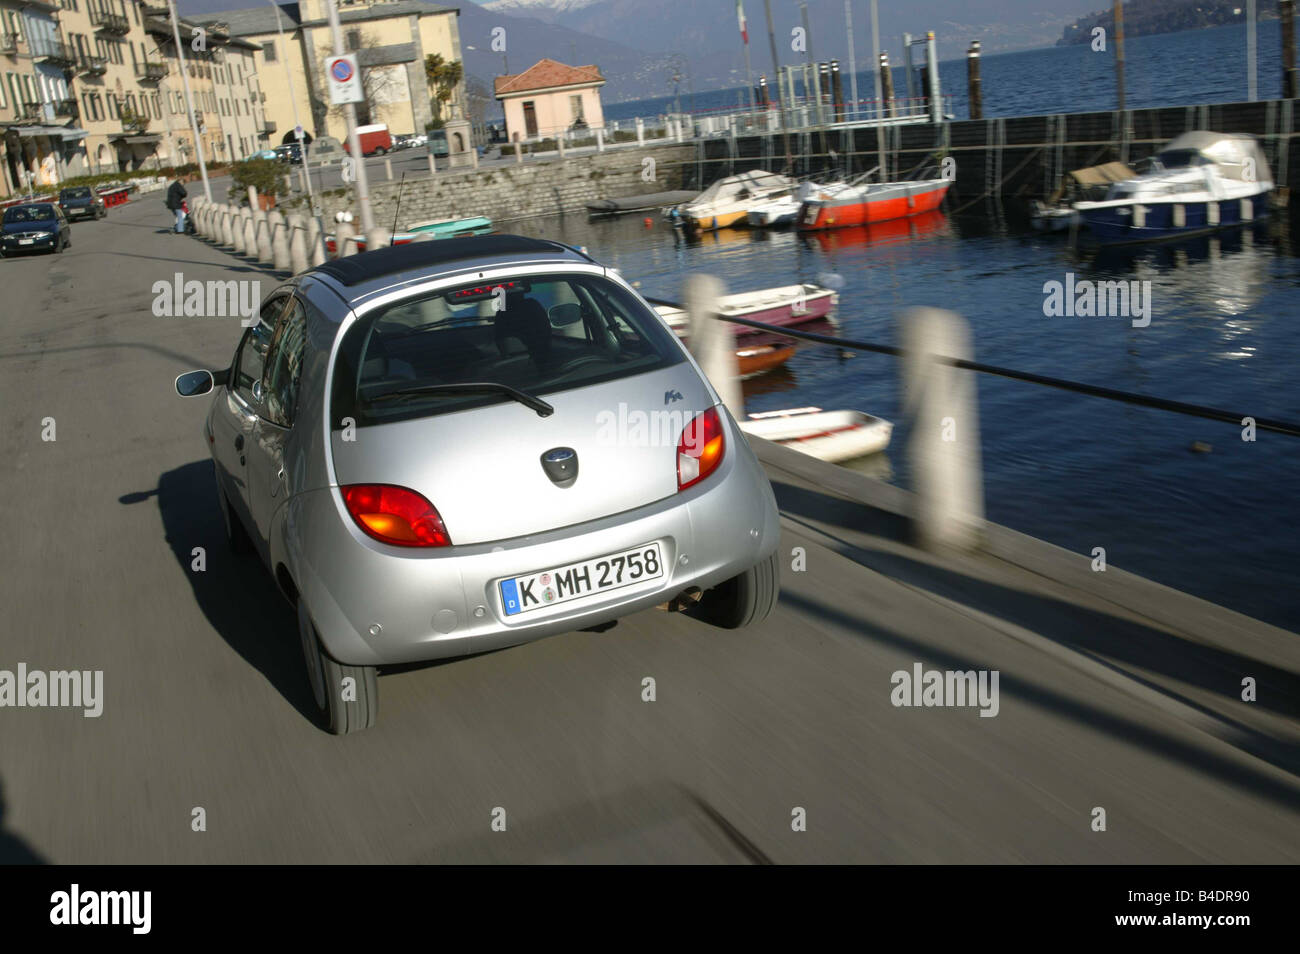 Car Ford Ka Miniapprox S Model Year  Limousine Silver Diagonal From The Back Rear View Driving City Harbour